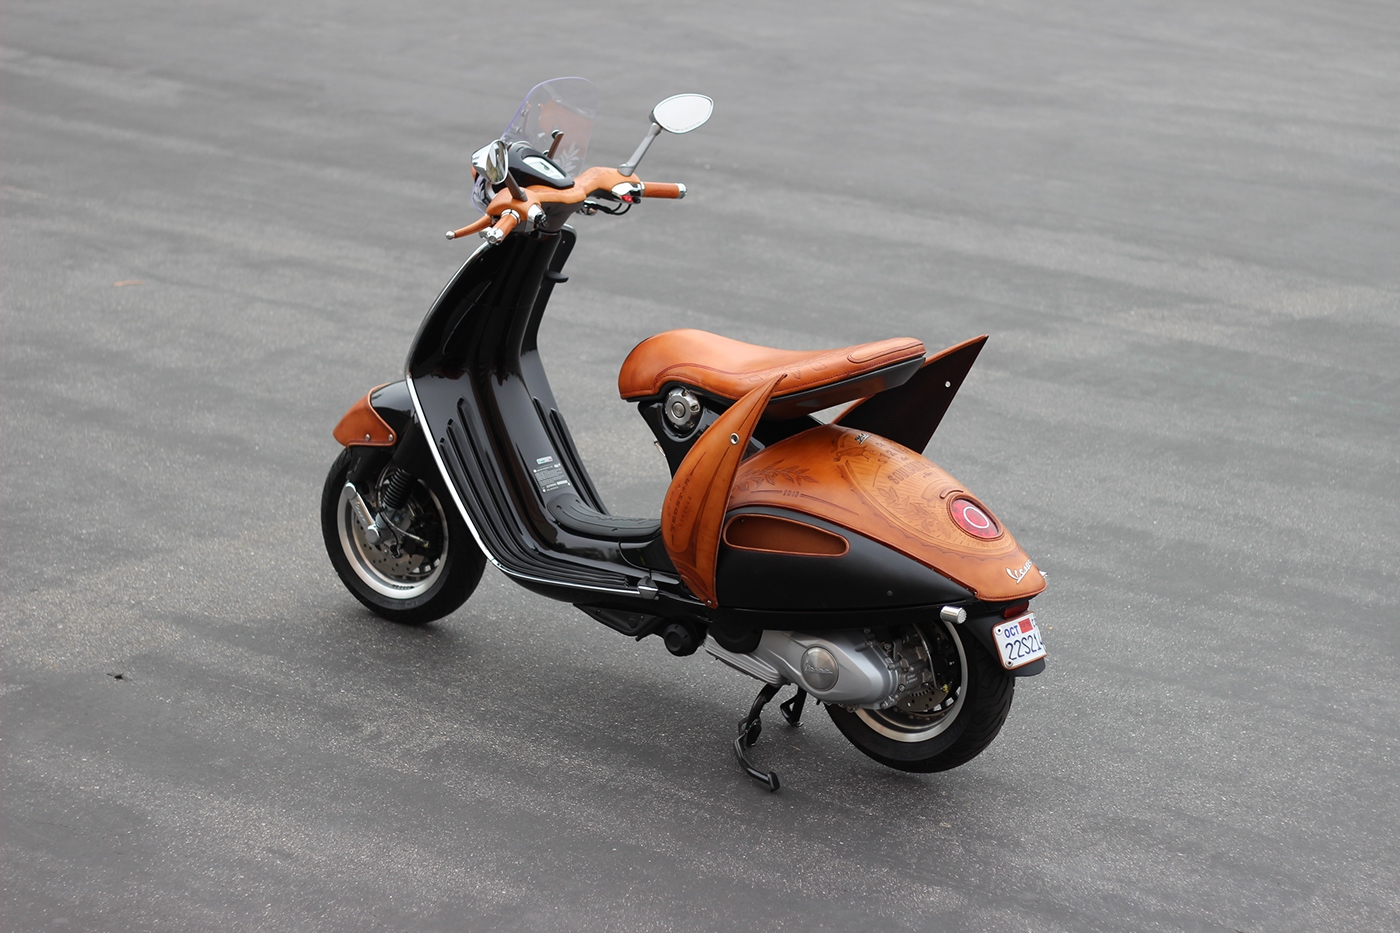 Project - Vespa 946 Bellissima / TEDST*R custom rides